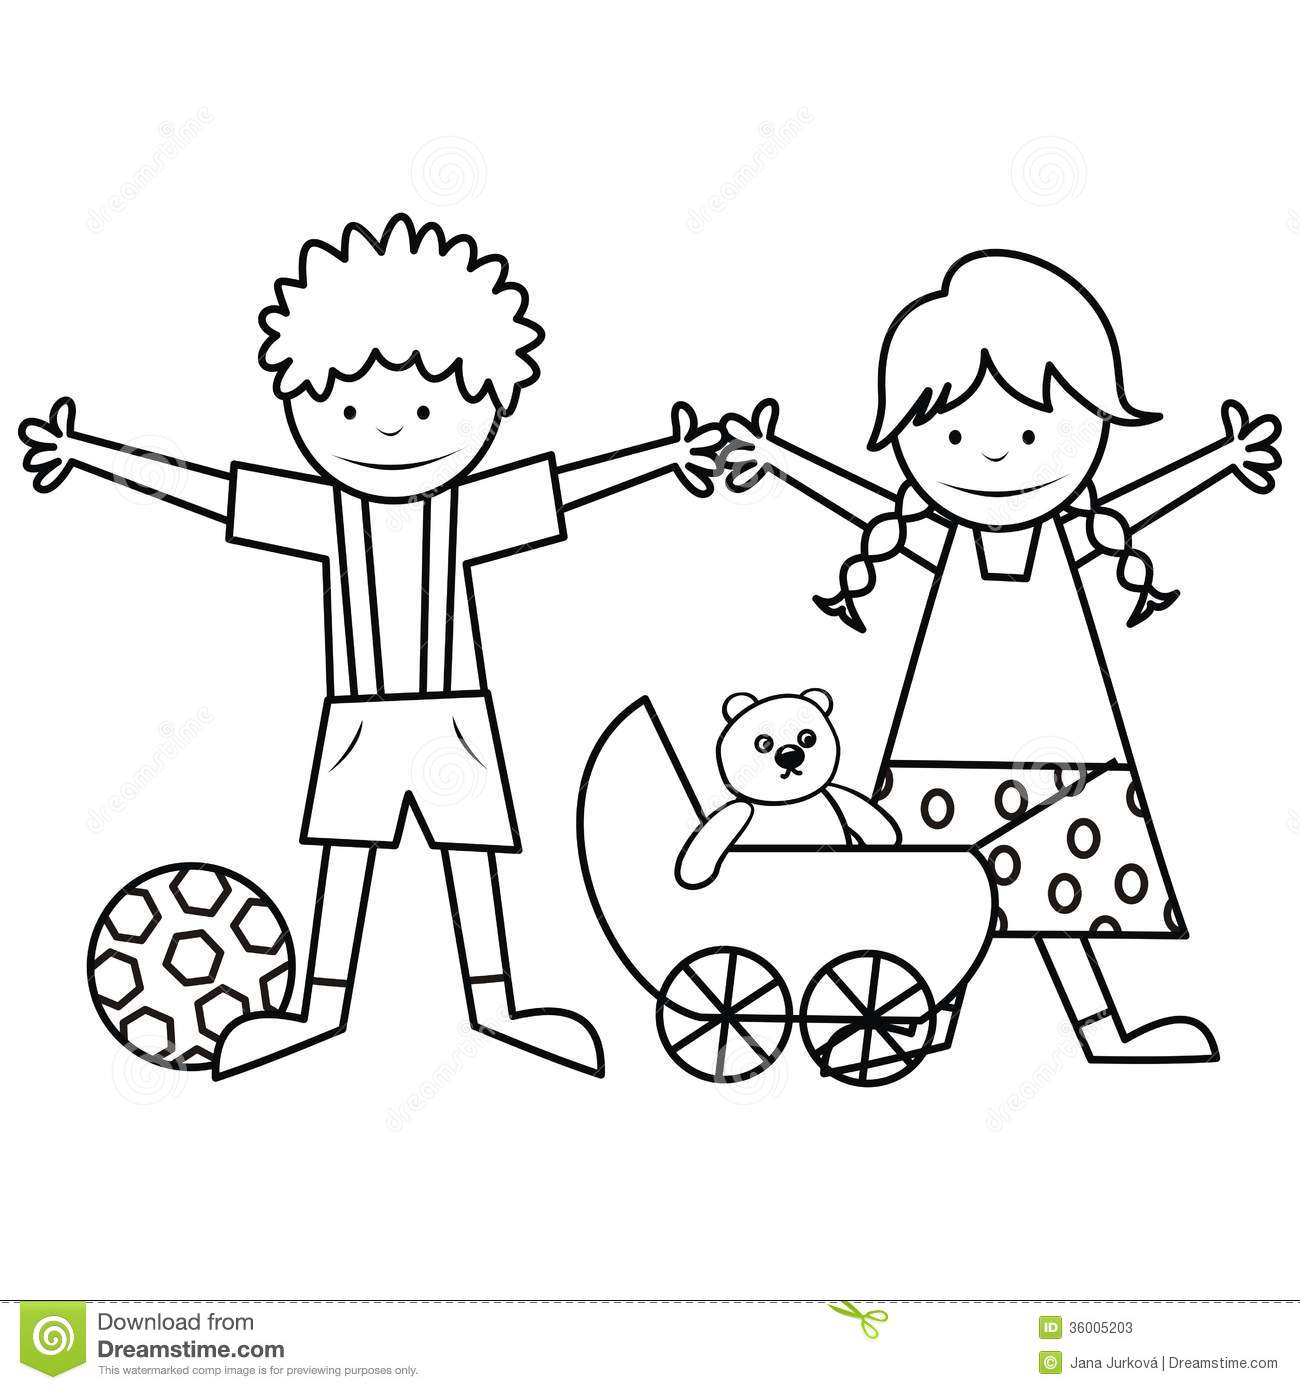 kids and toys coloring book stock photos - Children Coloring Book